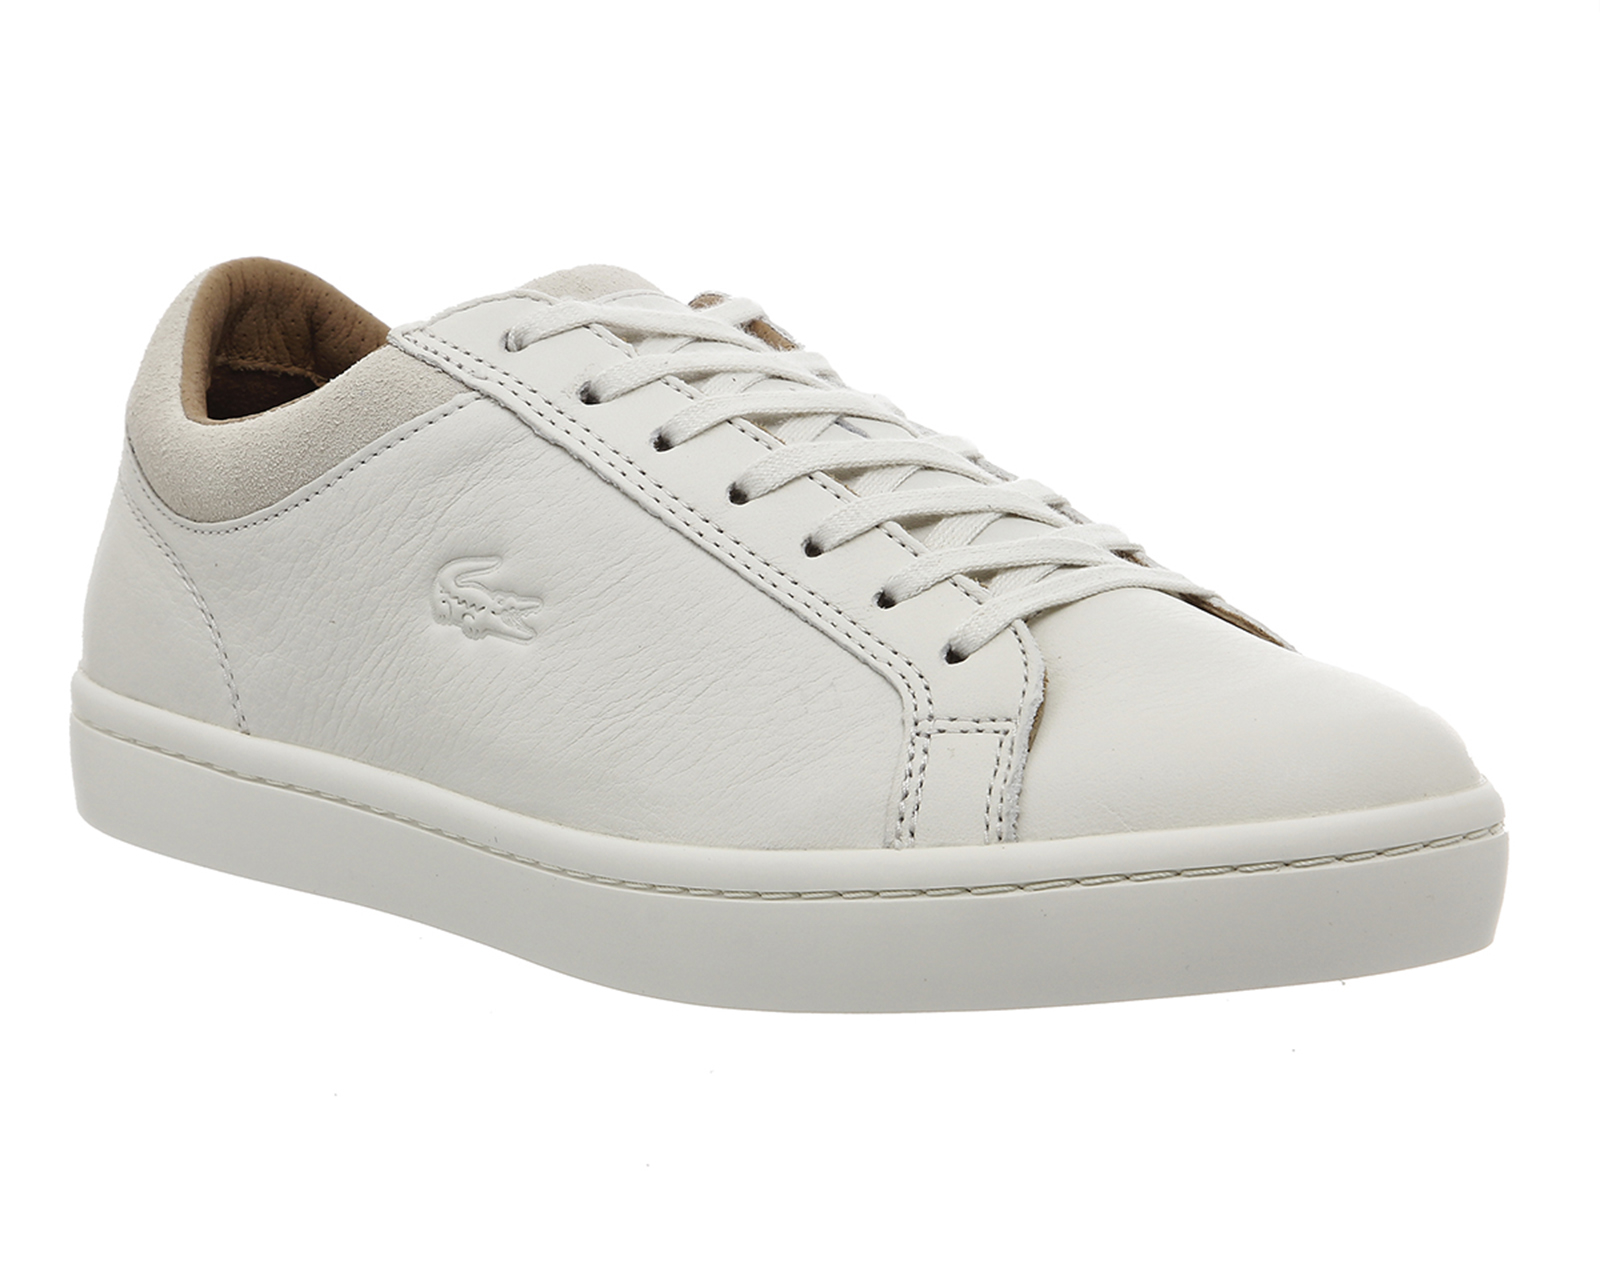 Lacoste Straightset White Leather 89608